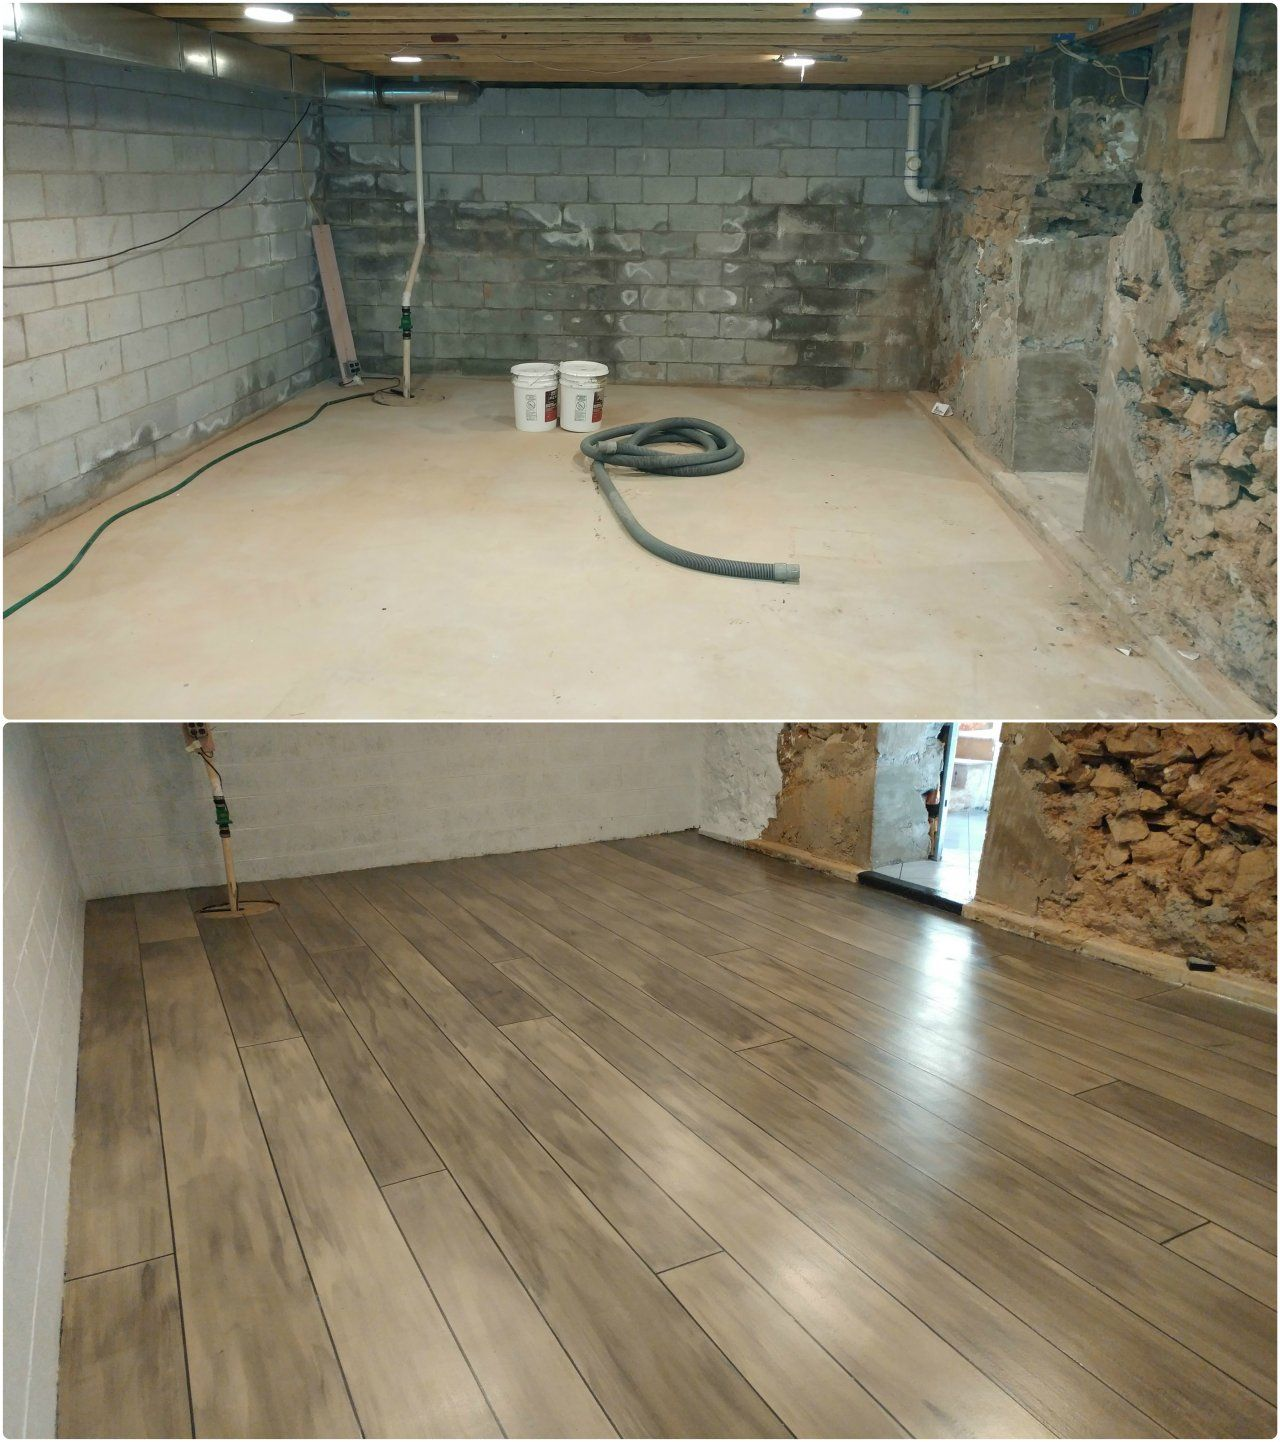 Concrete Wood Floor Basement Refinished With Concrete Wood Ardmore Pa Rustic